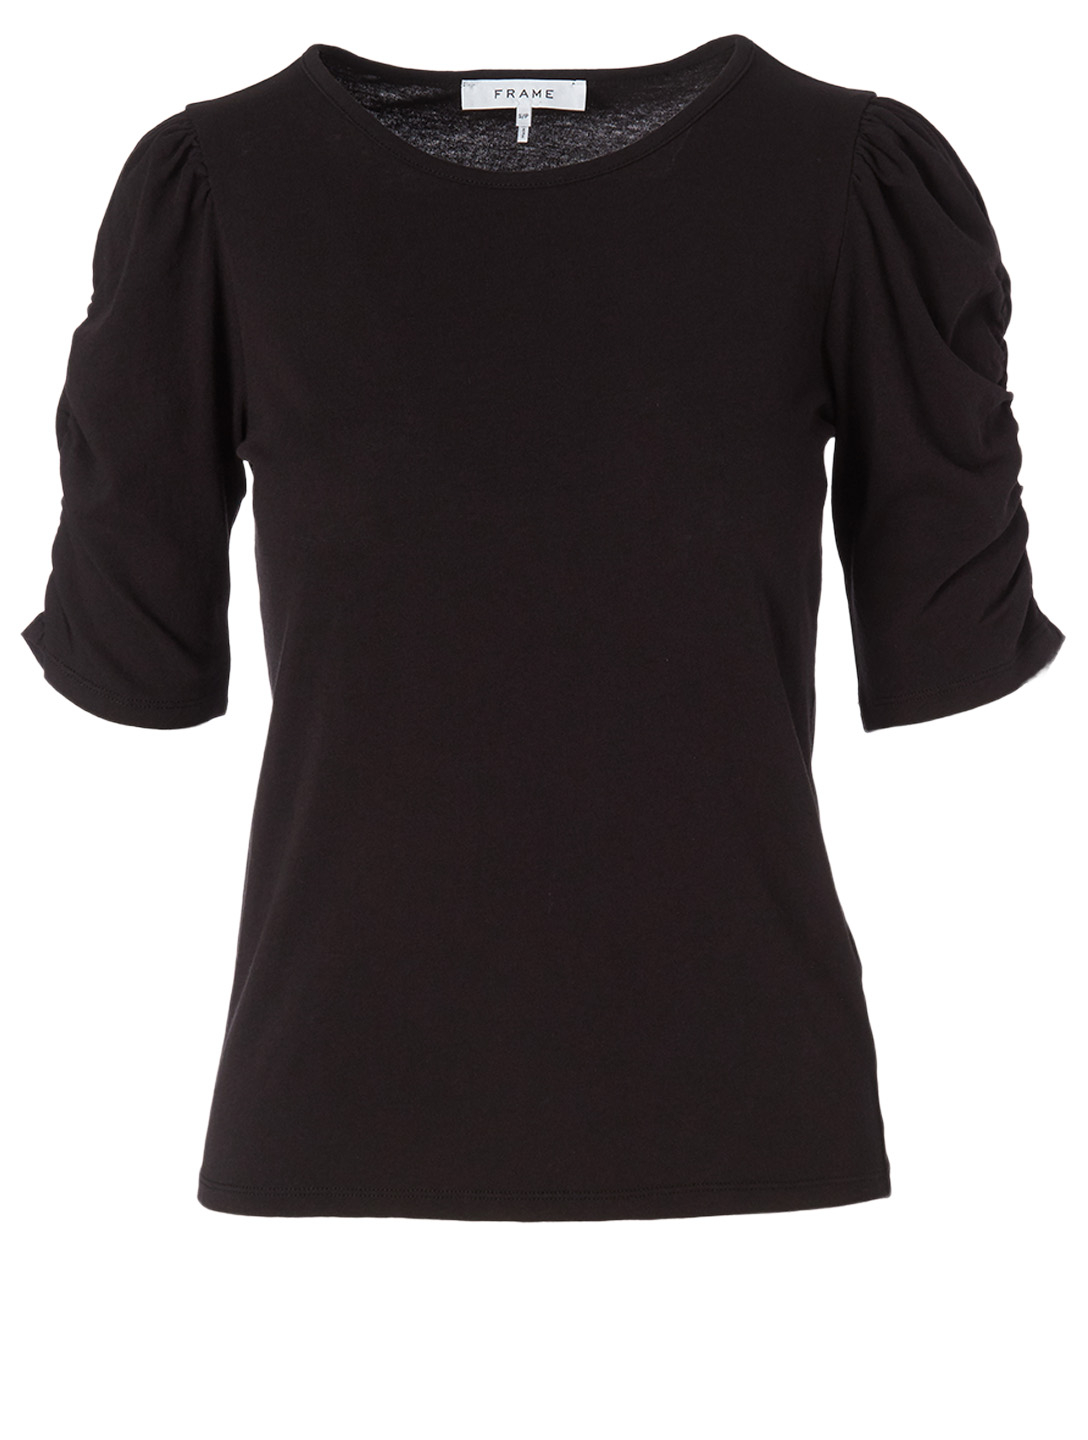 FRAME Cotton Gathered-Sleeve Top Women's Black